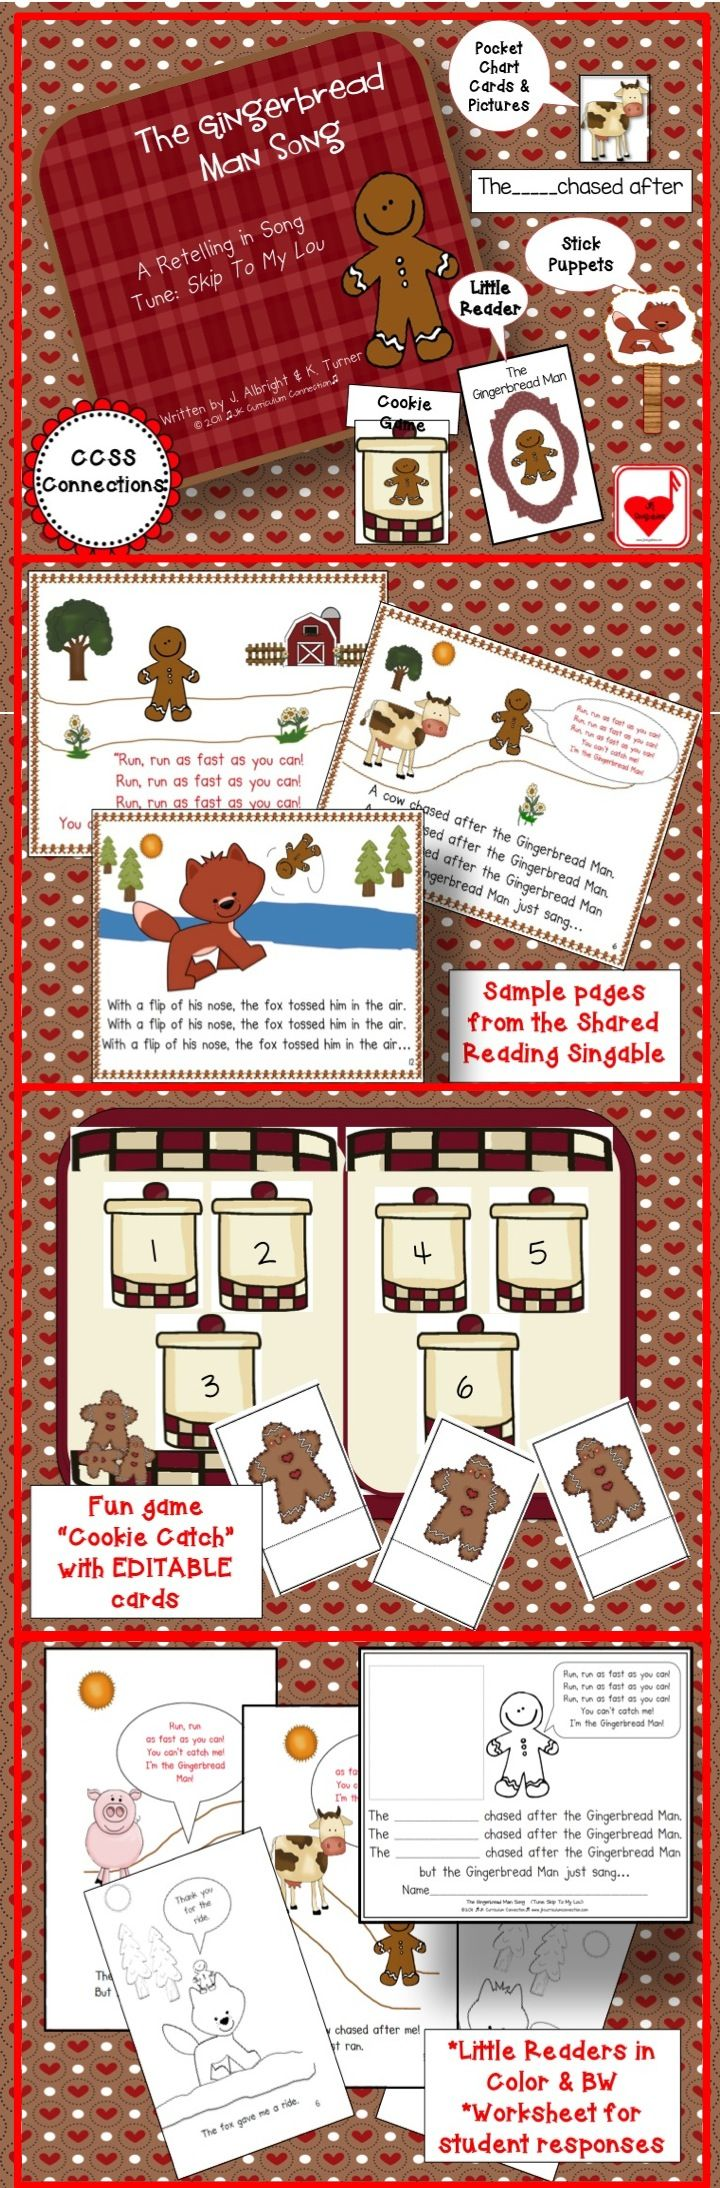 """This SONG is a complete retelling of the Gingerbread Man story. Children LOVE singing this, especially the chorus """"Run, run as fast as you can! You can't catch me! I'm the Gingerbread Man!"""" (Tune """"Skip to My Lou"""") Includes mini-movie, Little Readers, Pocket chart words, pictures, puppets, path game with EDITABLE cards & a student writing activity!"""